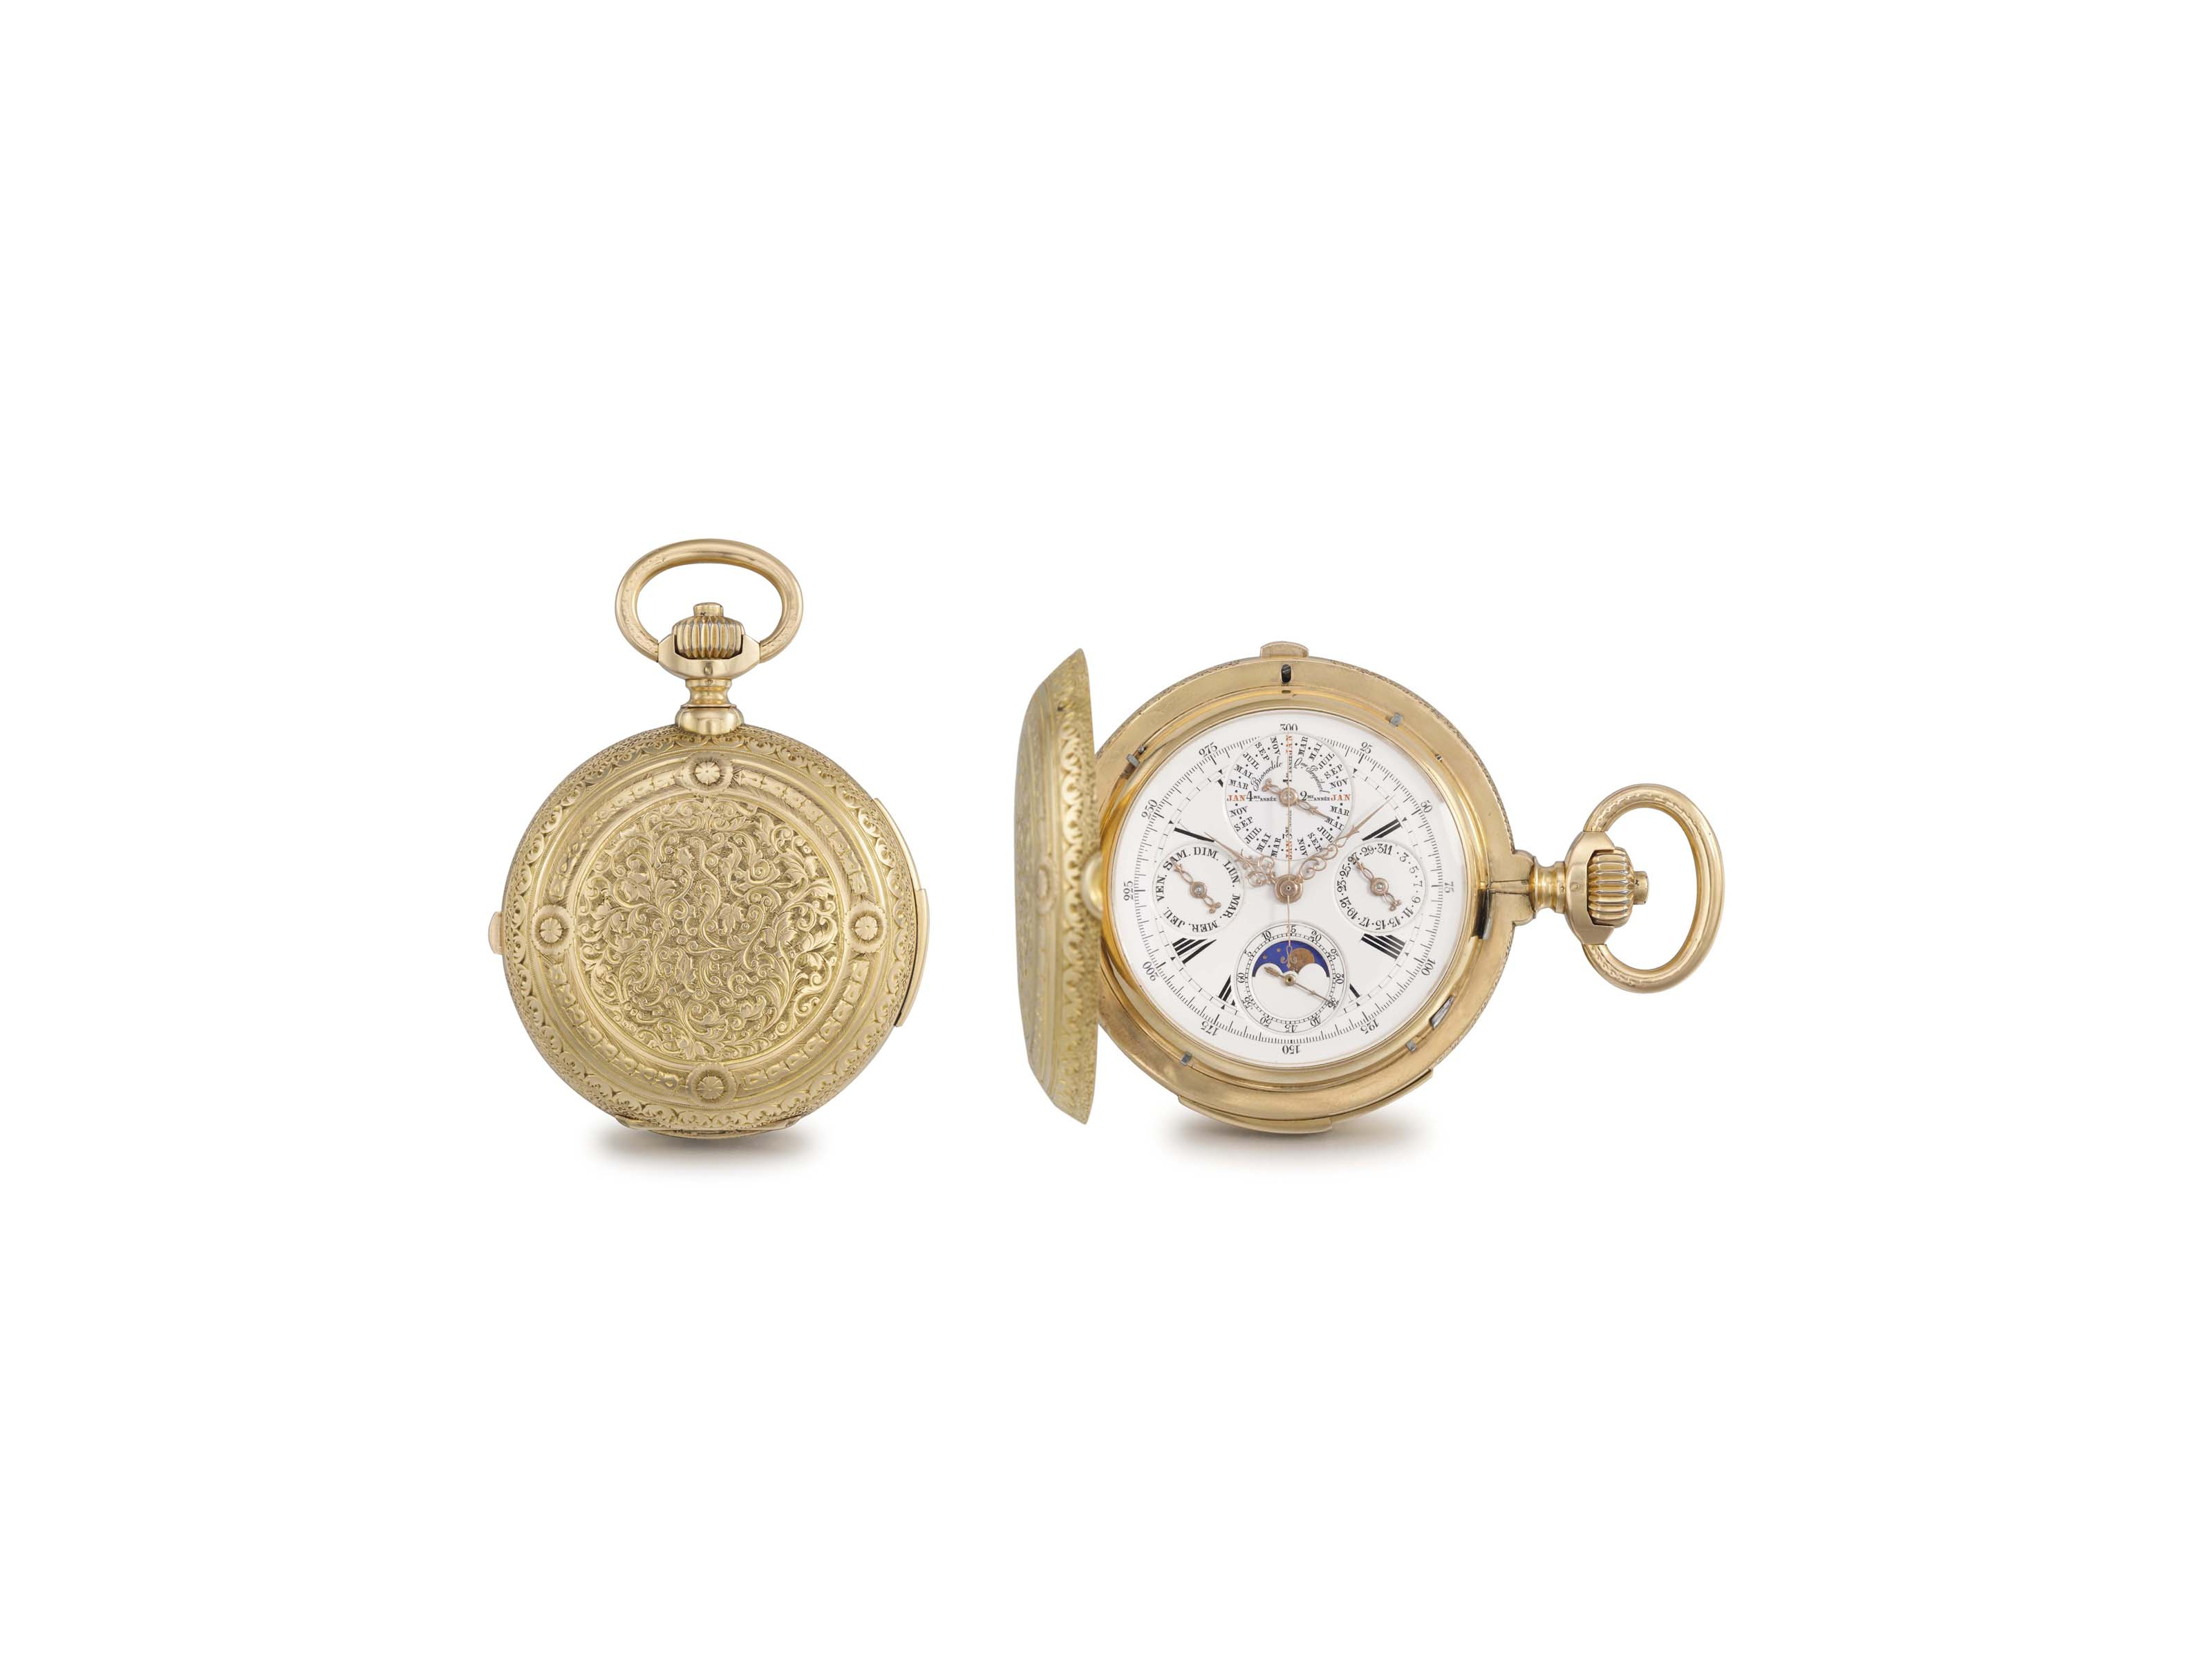 Haas. A fine and heavy 18K gold hunter case minute repeating perpetual calendar keyless lever watch with moon phases, made for the Spanish Market